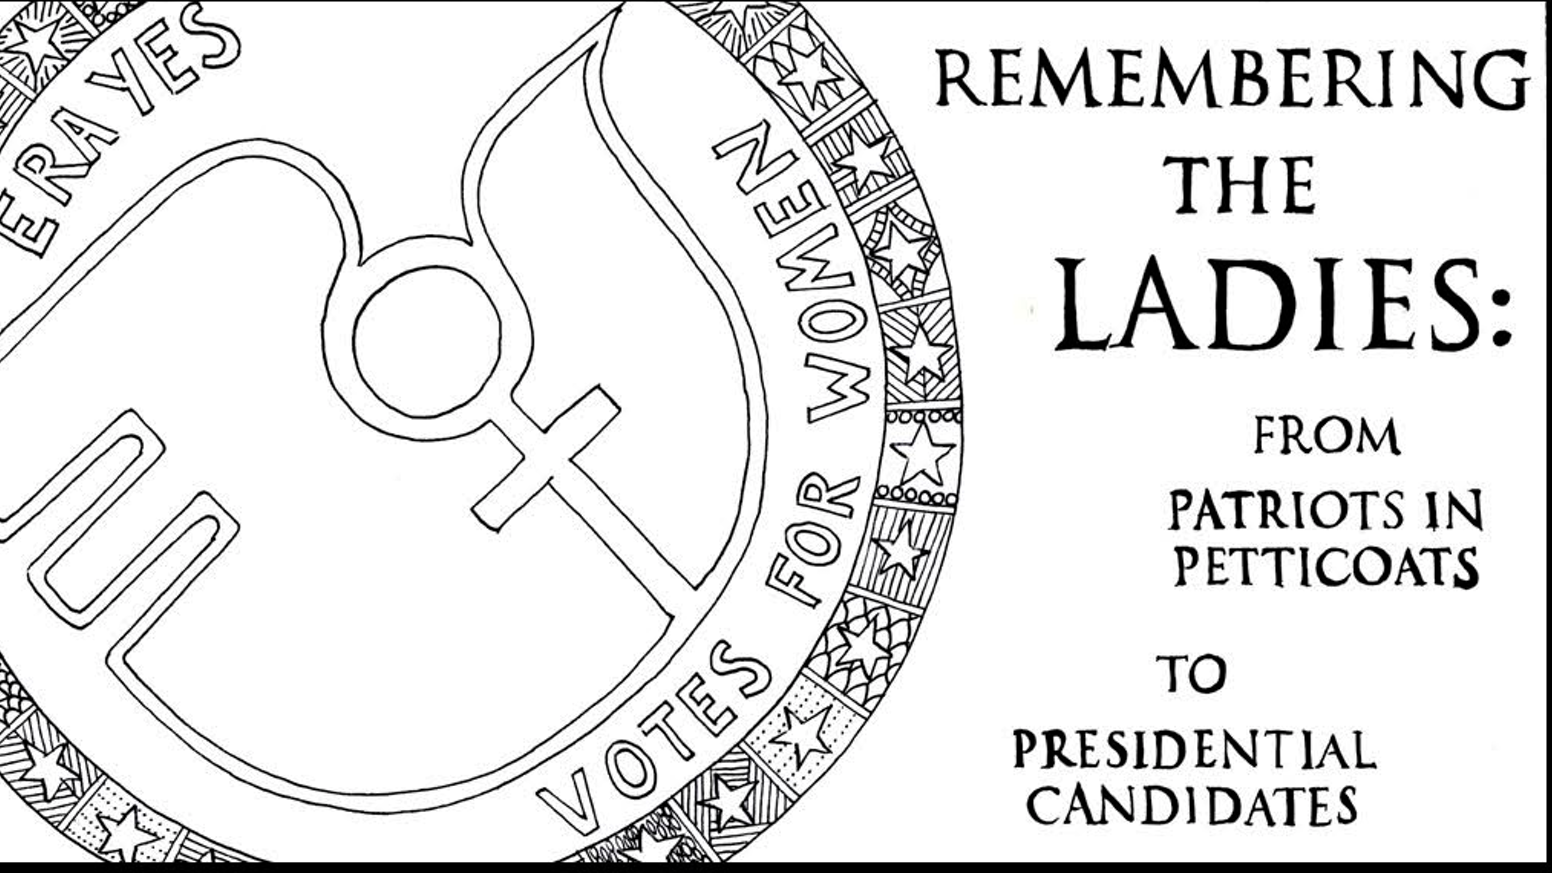 Remembering the Ladies: A Coloring Book by Carol Simon